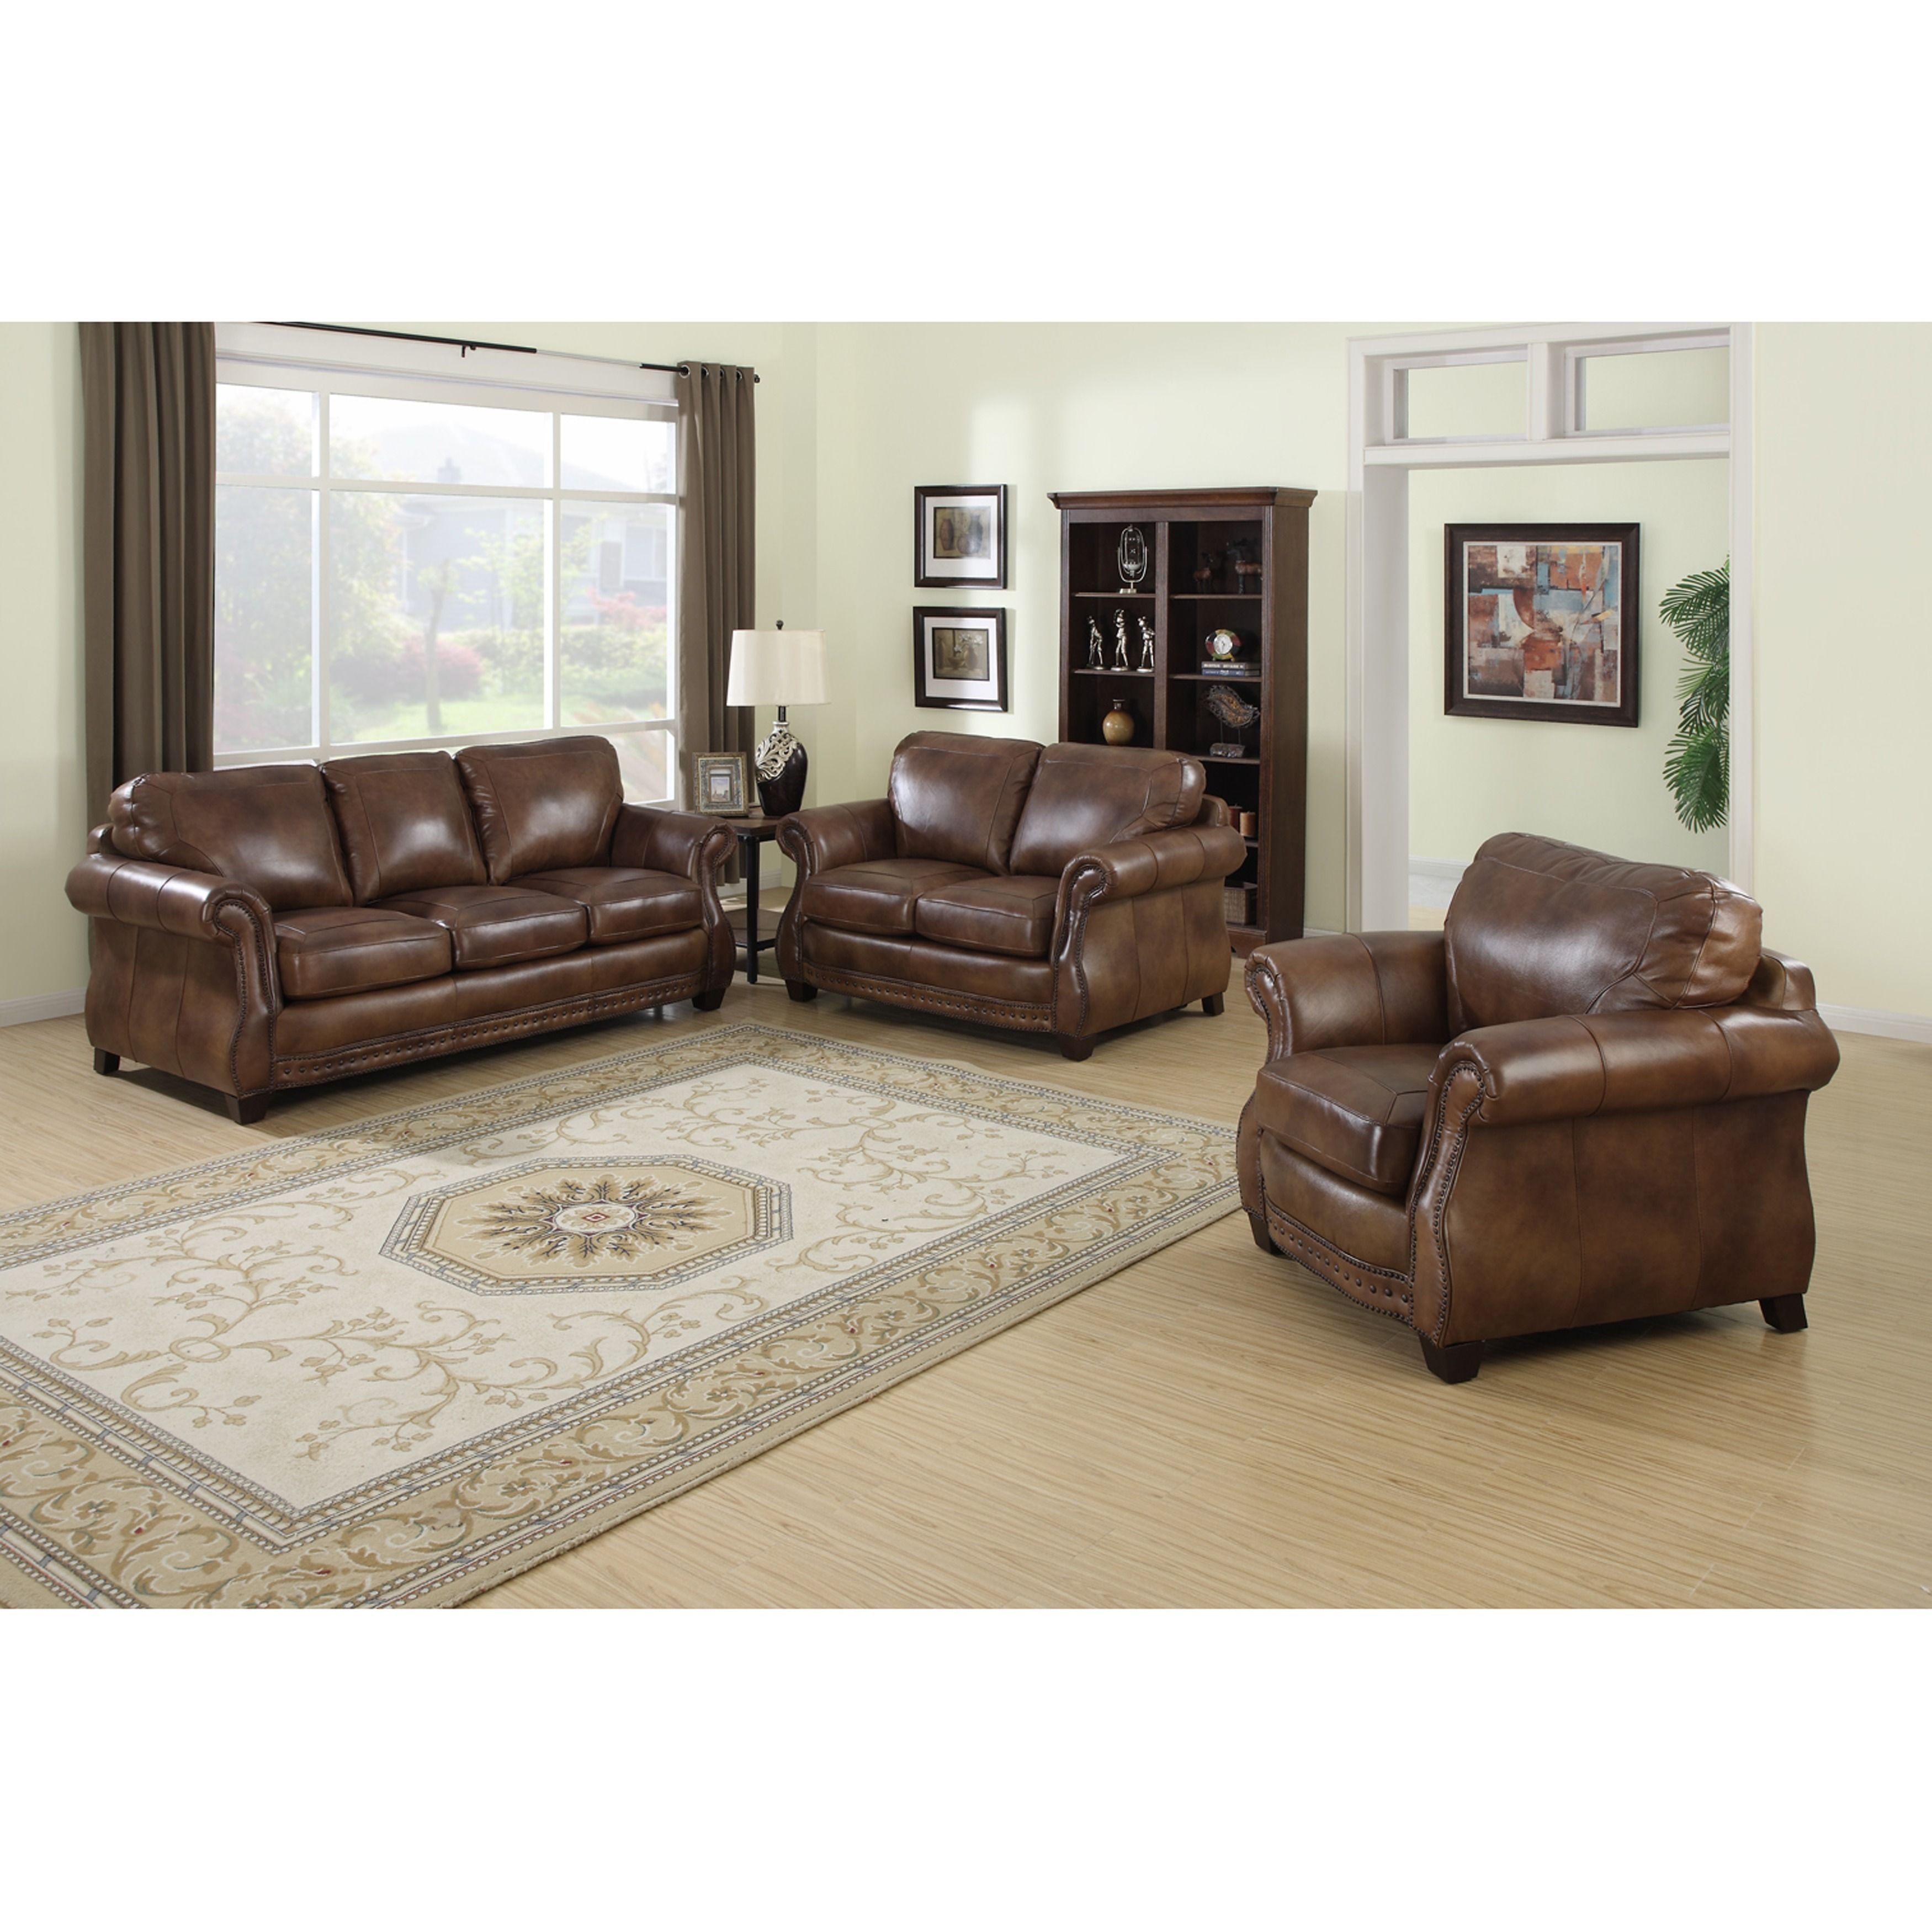 Sterling Cognac Brown Italian Leather Sofa Loveseat And Chair 39 X 86 X 39 In 2019 Sofa Loveseat Set Italian Leather Sofa Leather Sofa Loveseat